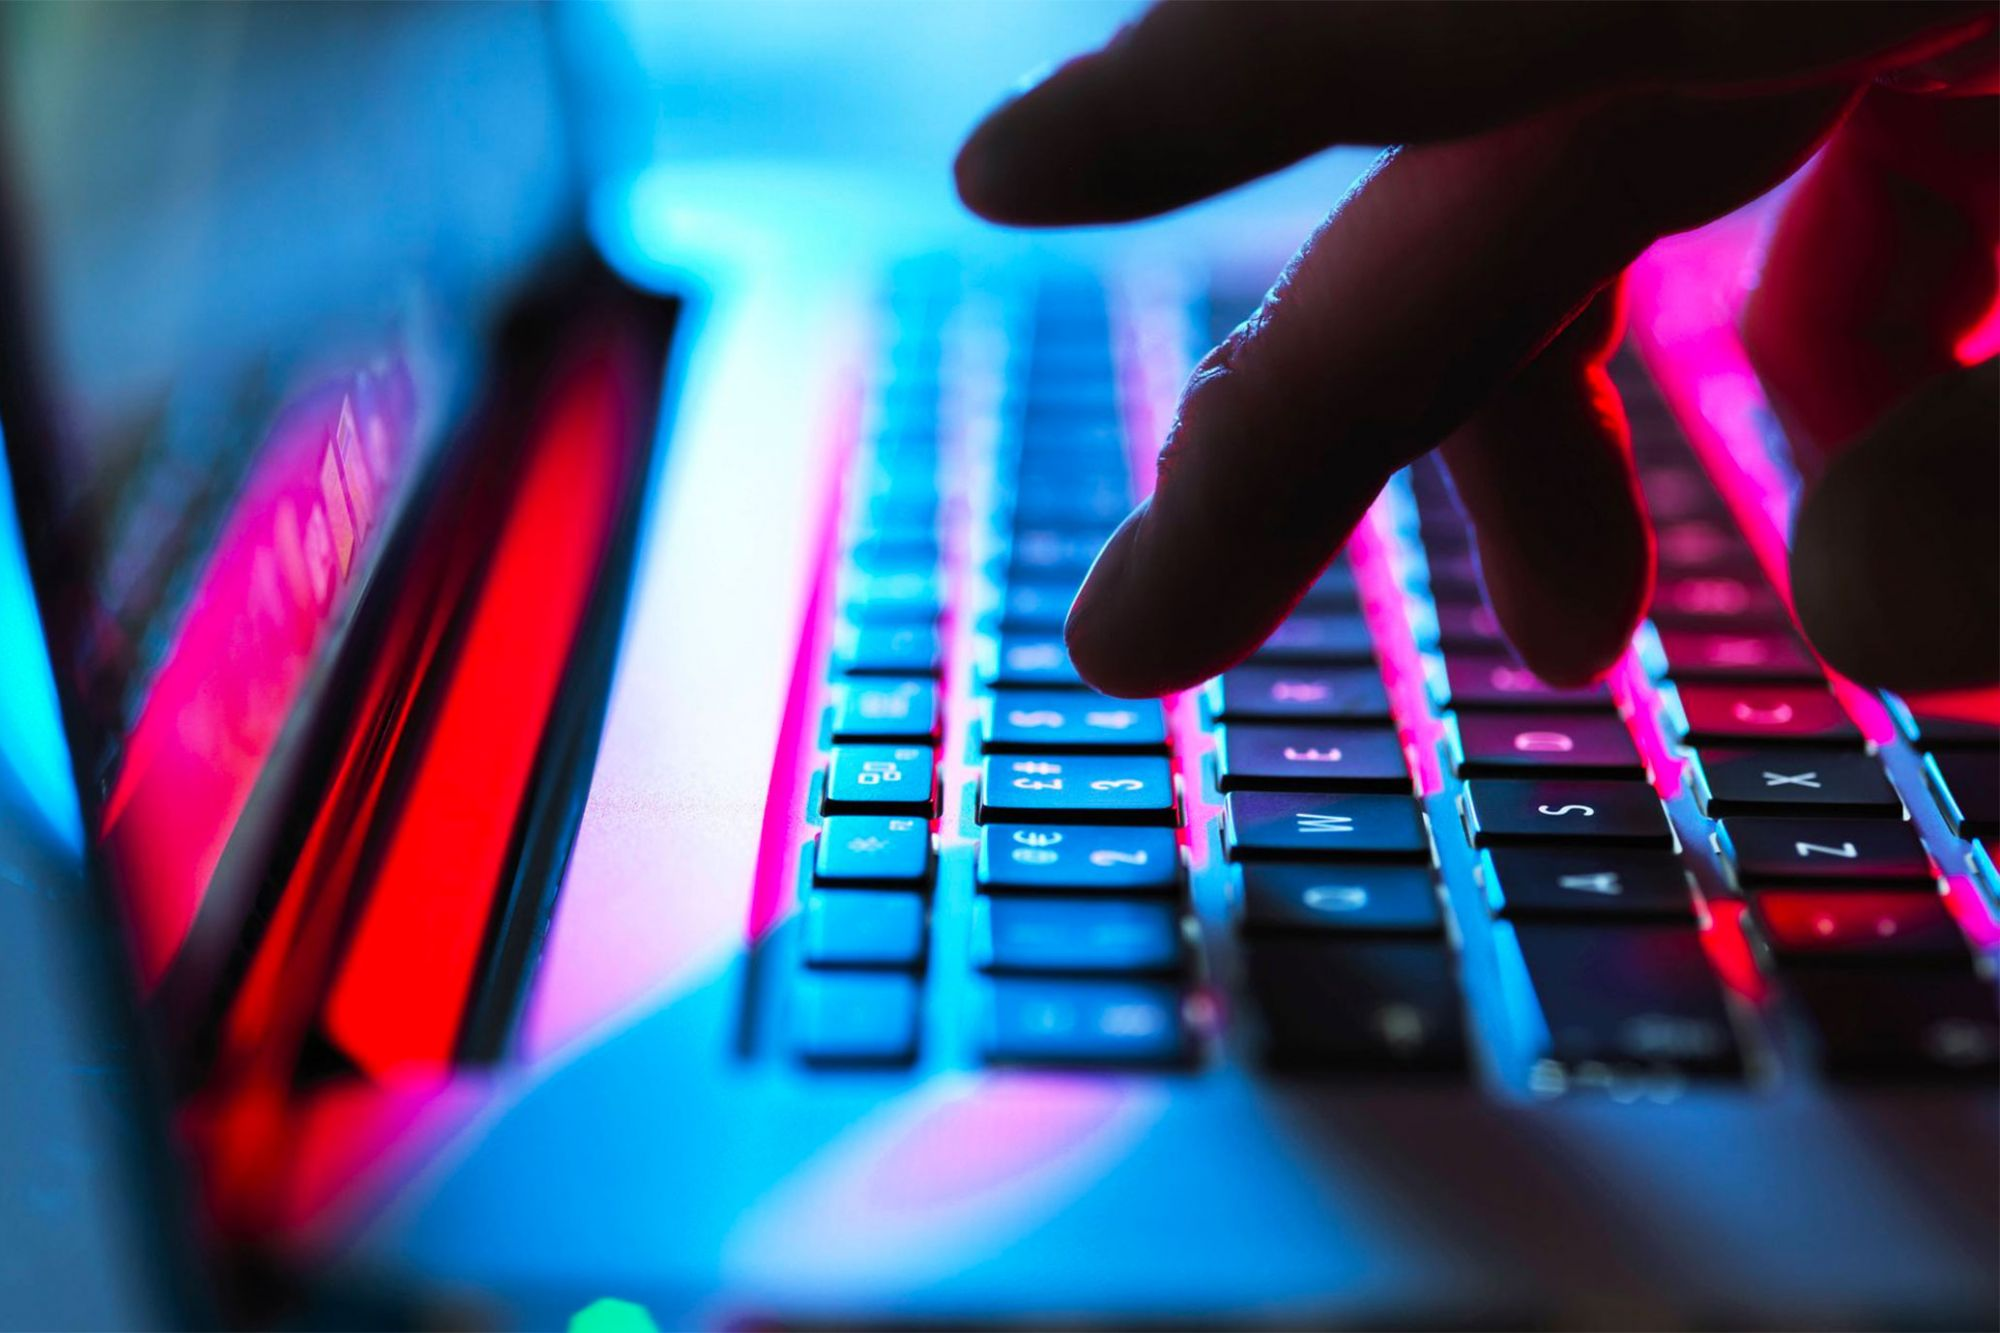 FBI Sees Cybercrime Reports Increase Fourfold During COVID-19 Outbreak